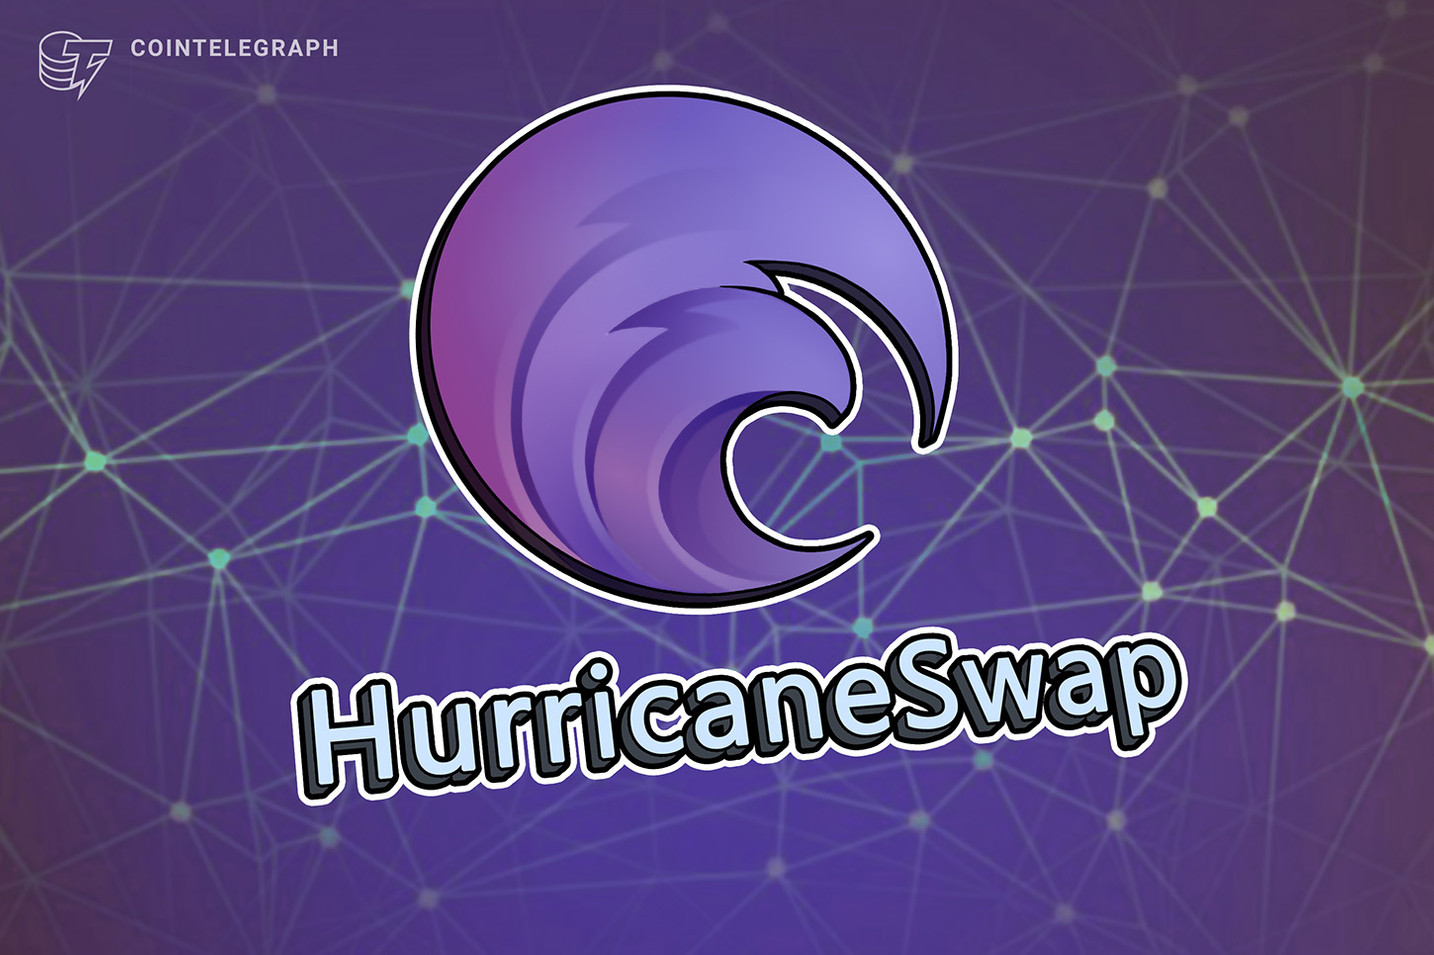 The new age of cross-chain transactions: HurricaneSwap attracts massive funding